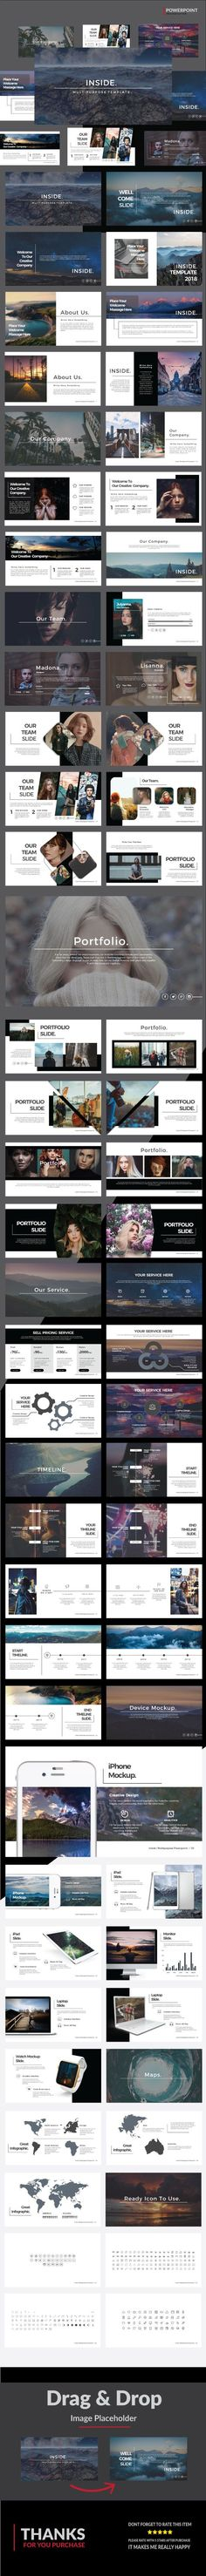 Inside - Multipurpose Powerpoint - Presentation Templates #powerpoint